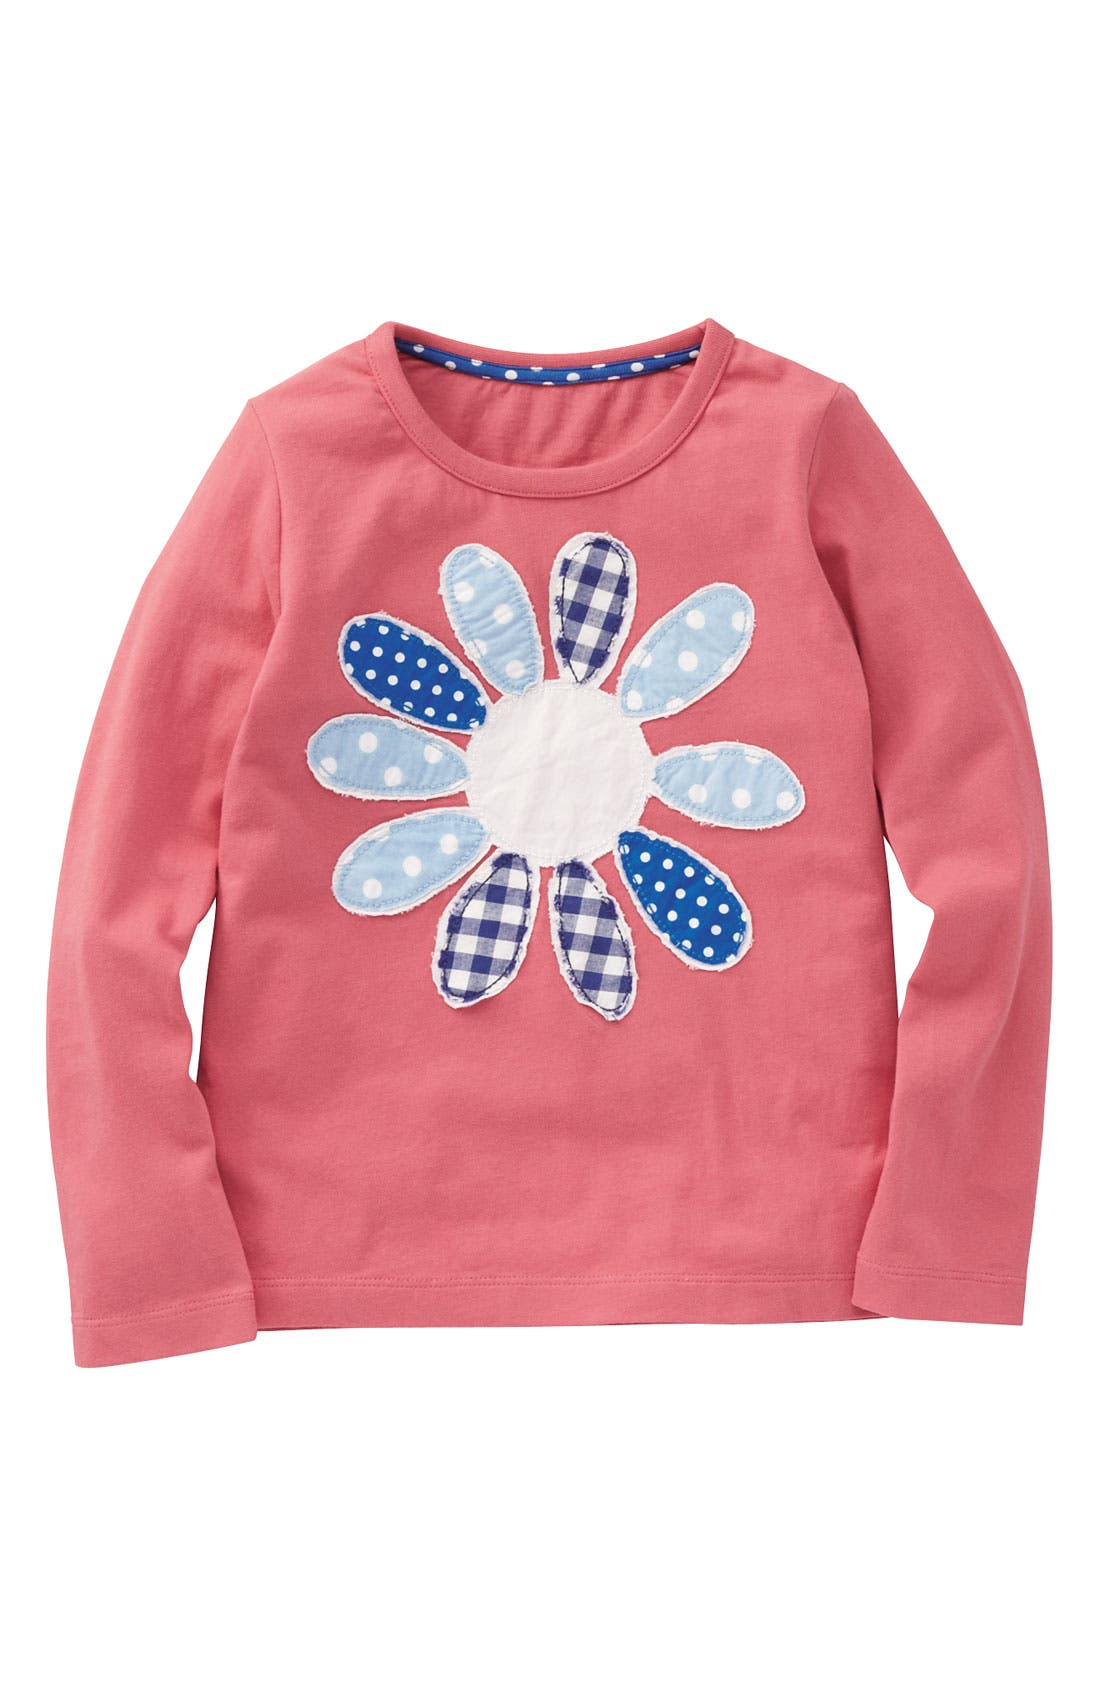 Main Image - Mini Boden Long Sleeve Tee (Toddler)